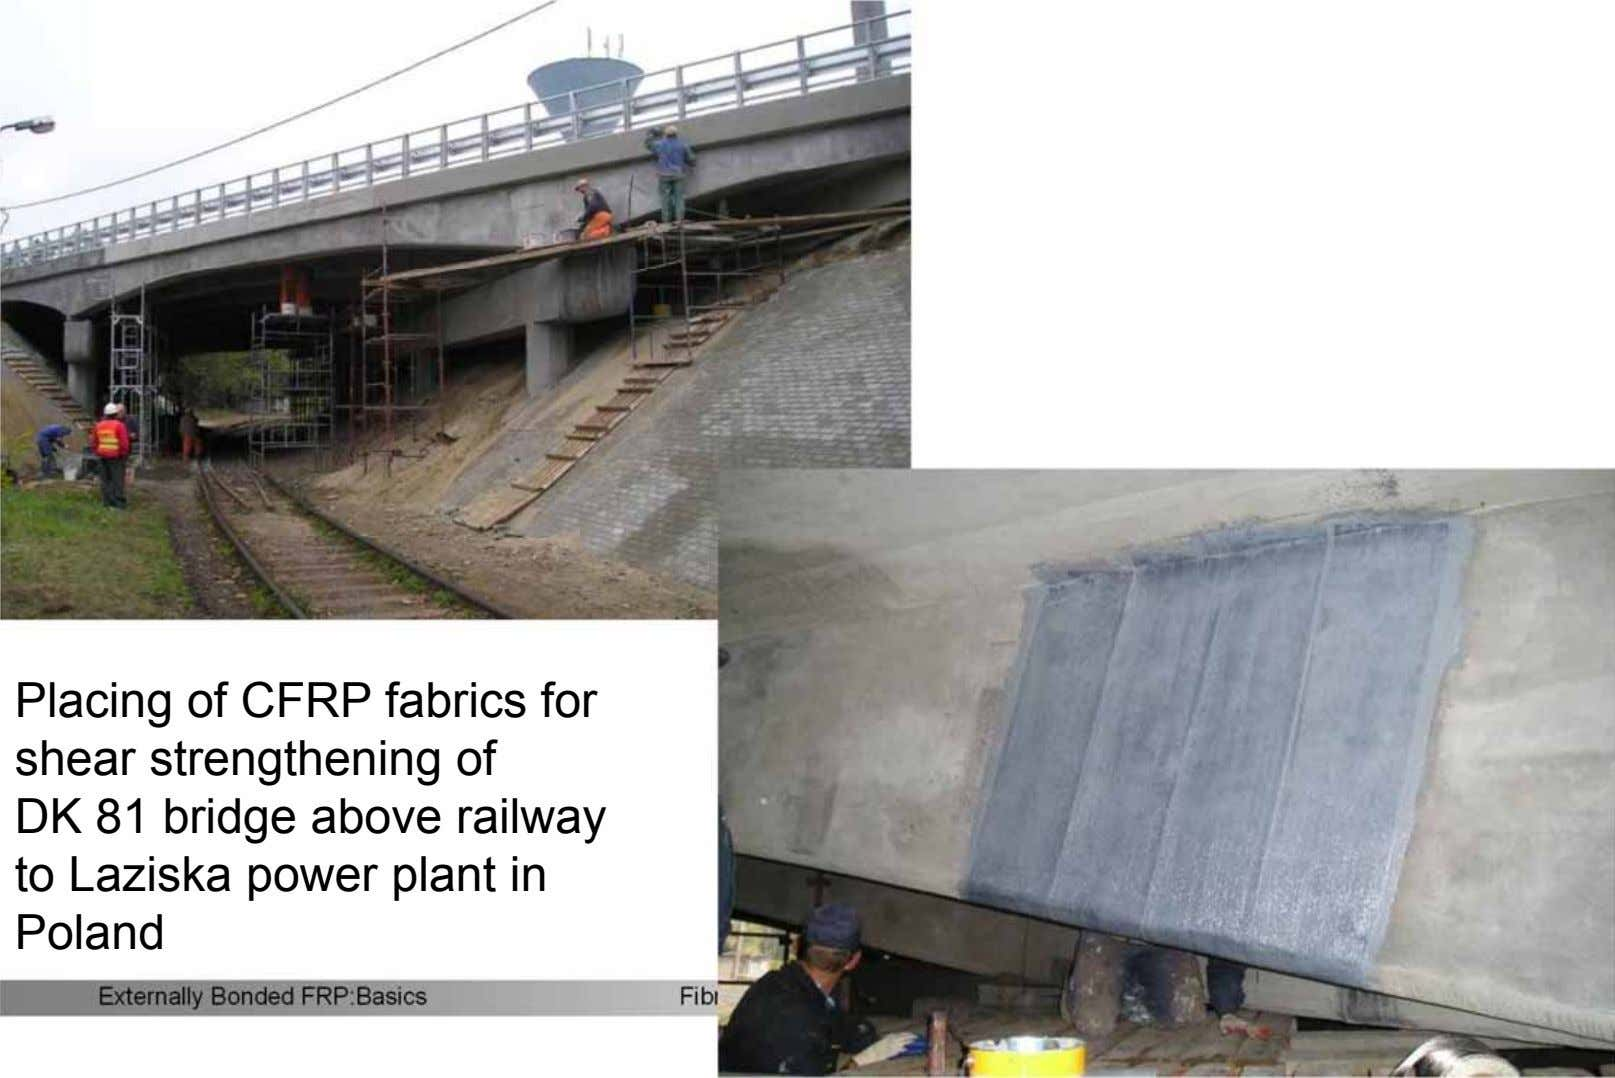 Placing of CFRP fabrics for shear strengthening of DK 81 bridge above railway to Laziska